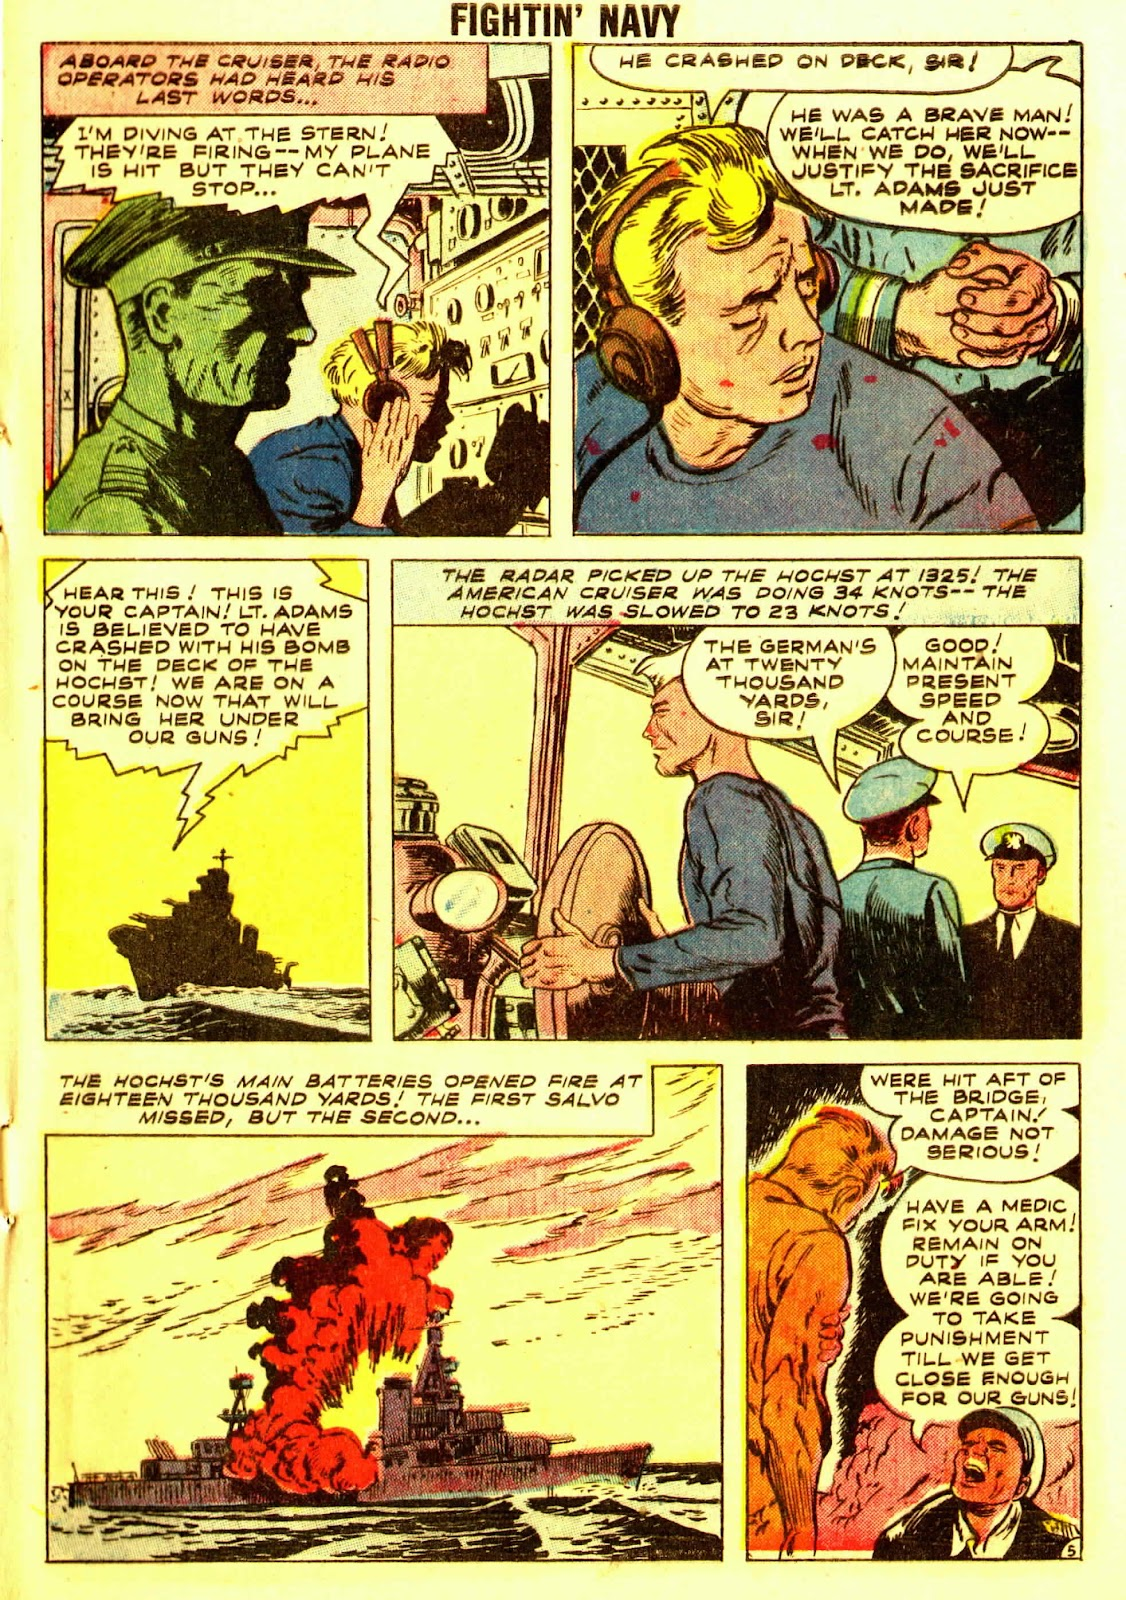 Read online Fightin' Navy comic -  Issue #83 - 7